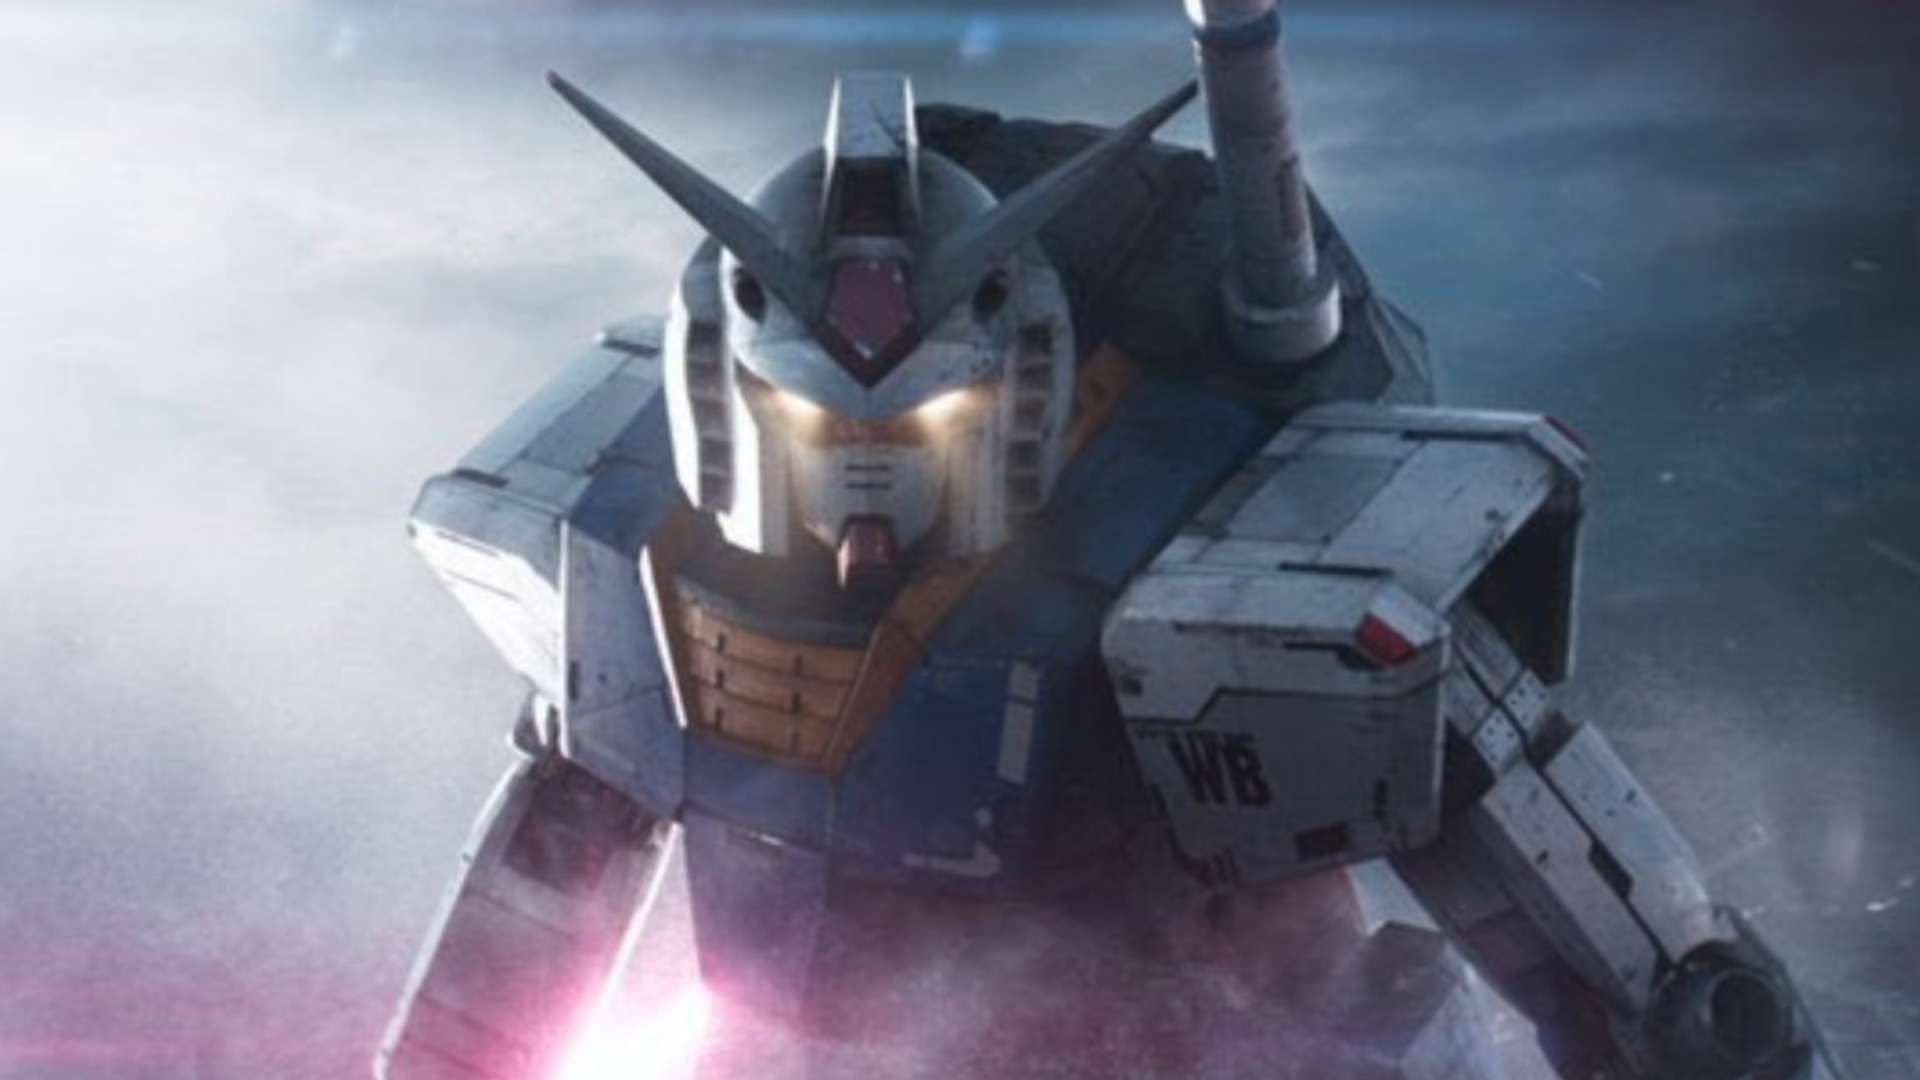 Mobile Suit Gundam: arriva la conferma, il film in live-action si farà!